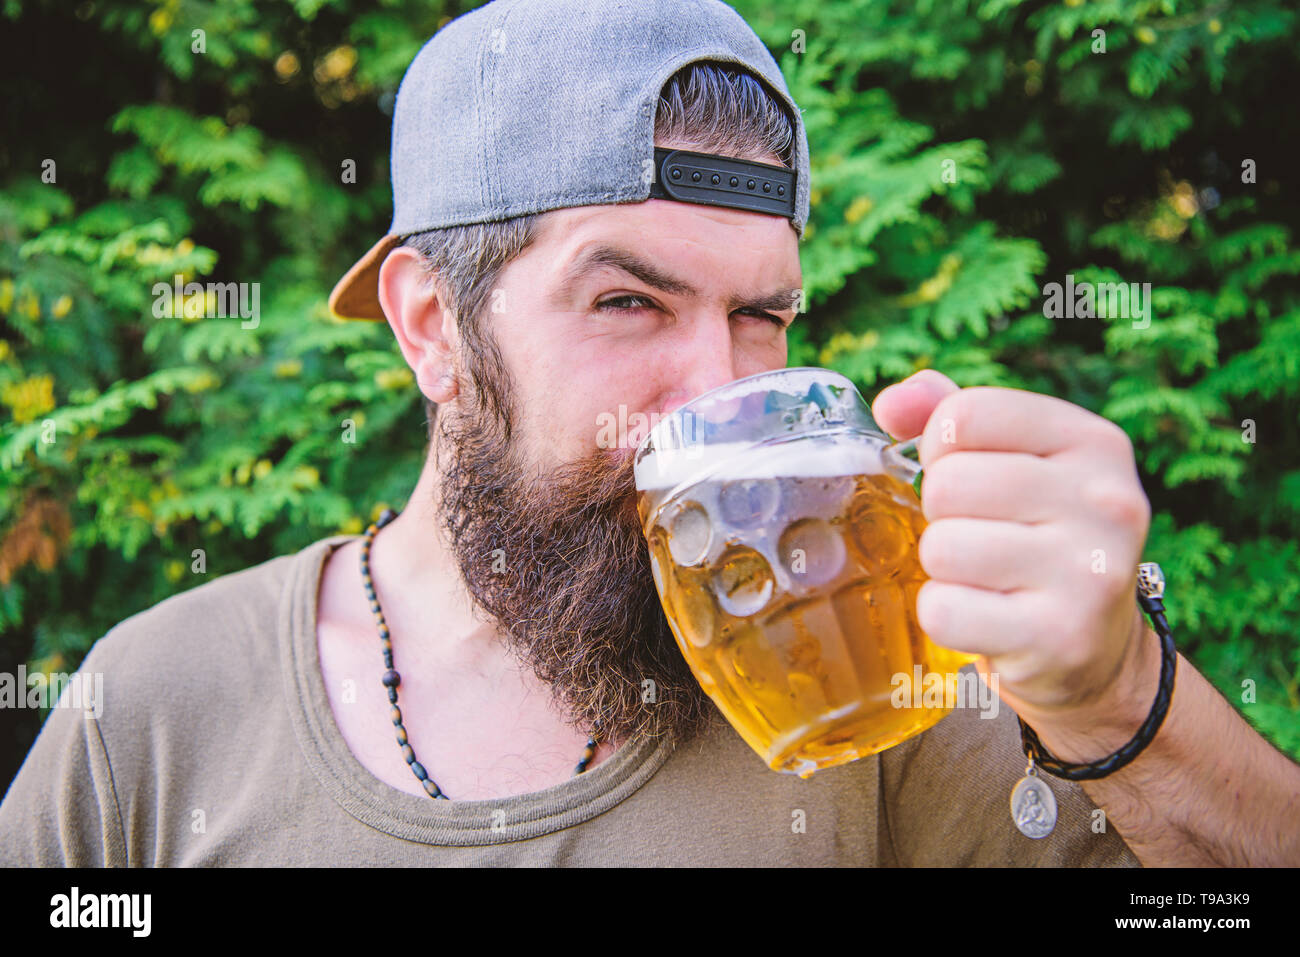 Quench thirst. Man relaxing enjoying beer hot summer day. Hipster brutal bearded man hold mug cold fresh beer. Alcohol drink and bar. Craft beer is young, urban and fashionable. Beer and ale concept. - Stock Image